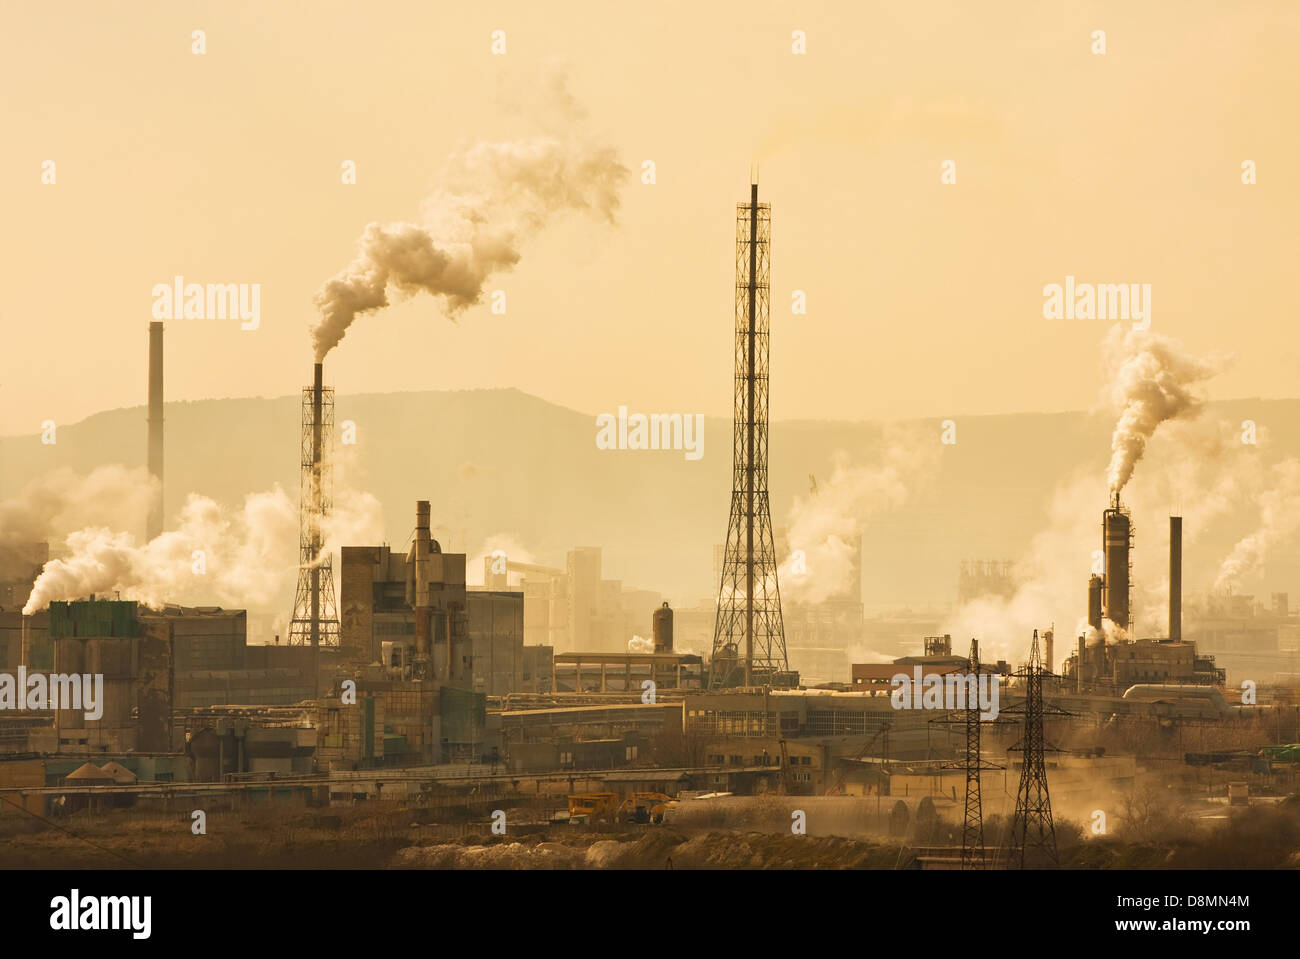 Industrial city with chimneys an refinery - Stock Image